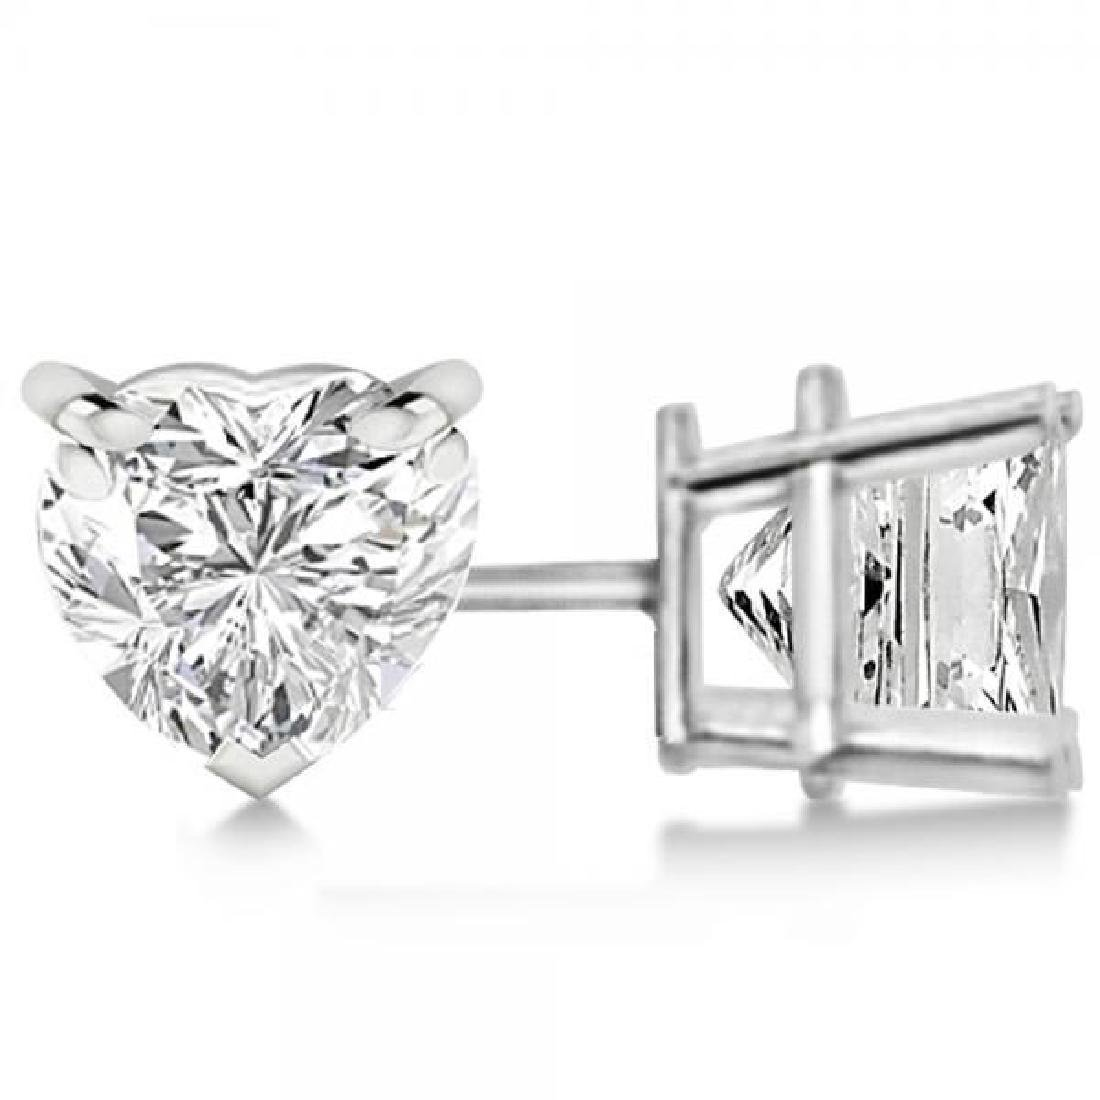 0.75ct Heart-Cut Diamond Stud Earrings 14kt White Gold